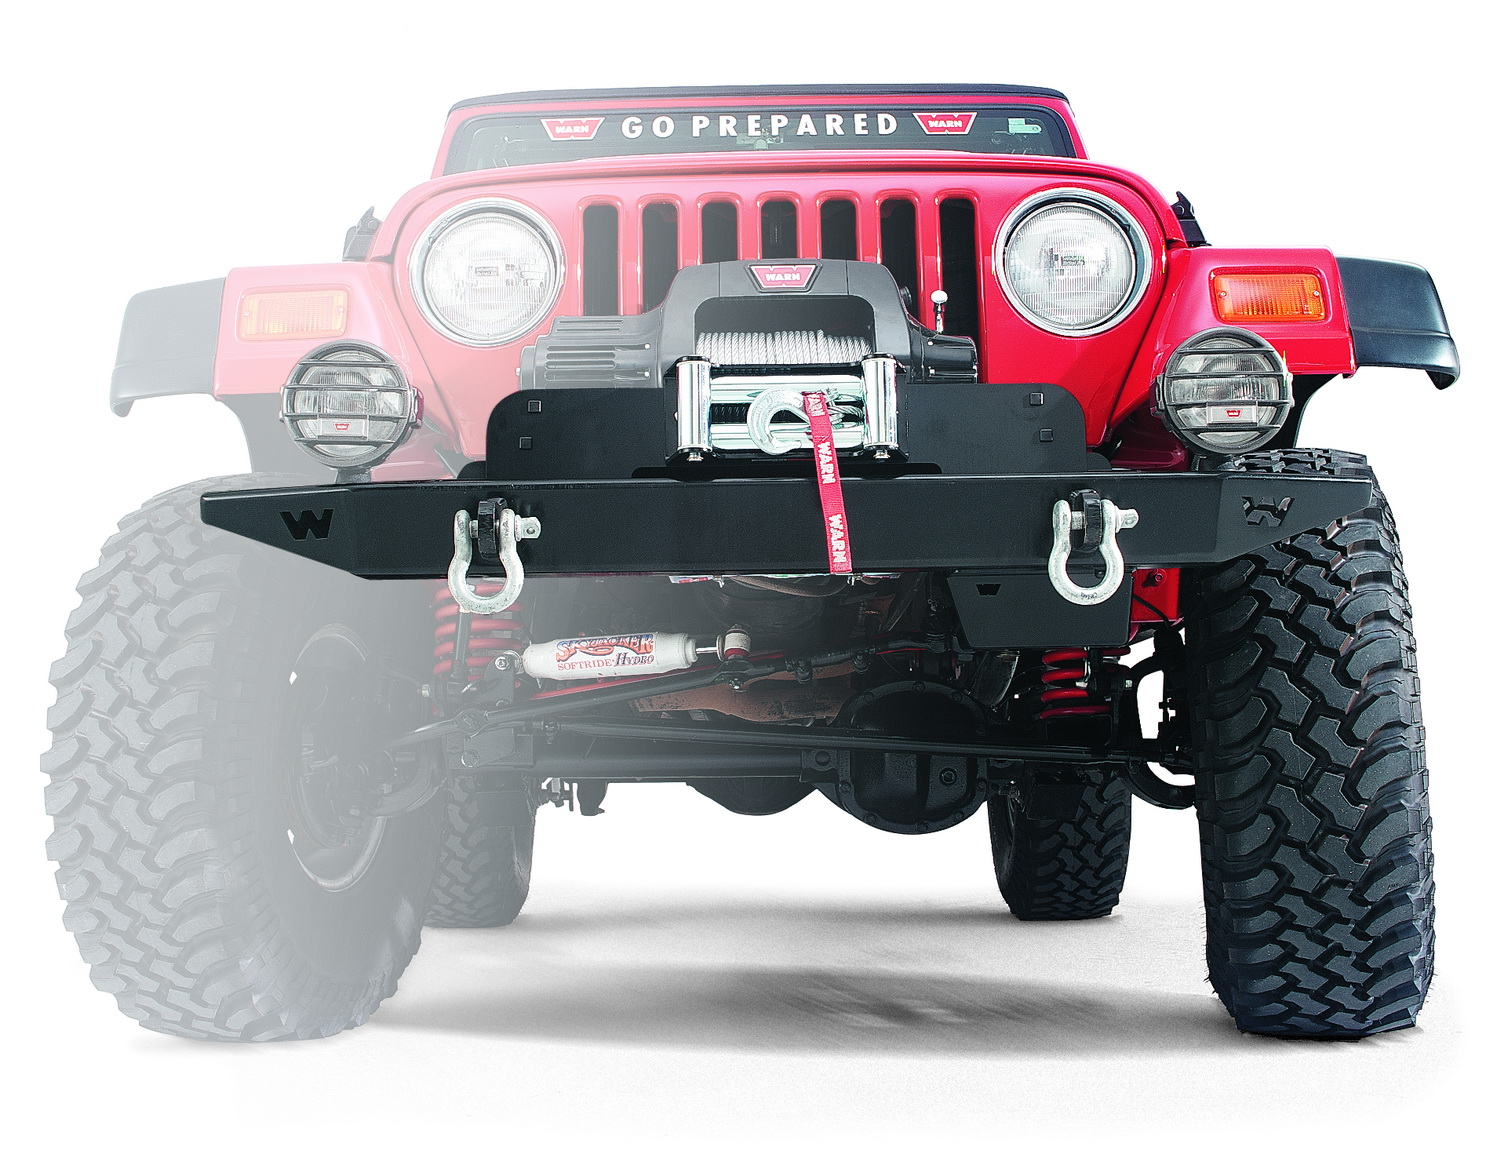 Warn 13910 Winch Mounting Plate 55-86 CJ5 CJ6 CJ7 Scrambler at Sears.com